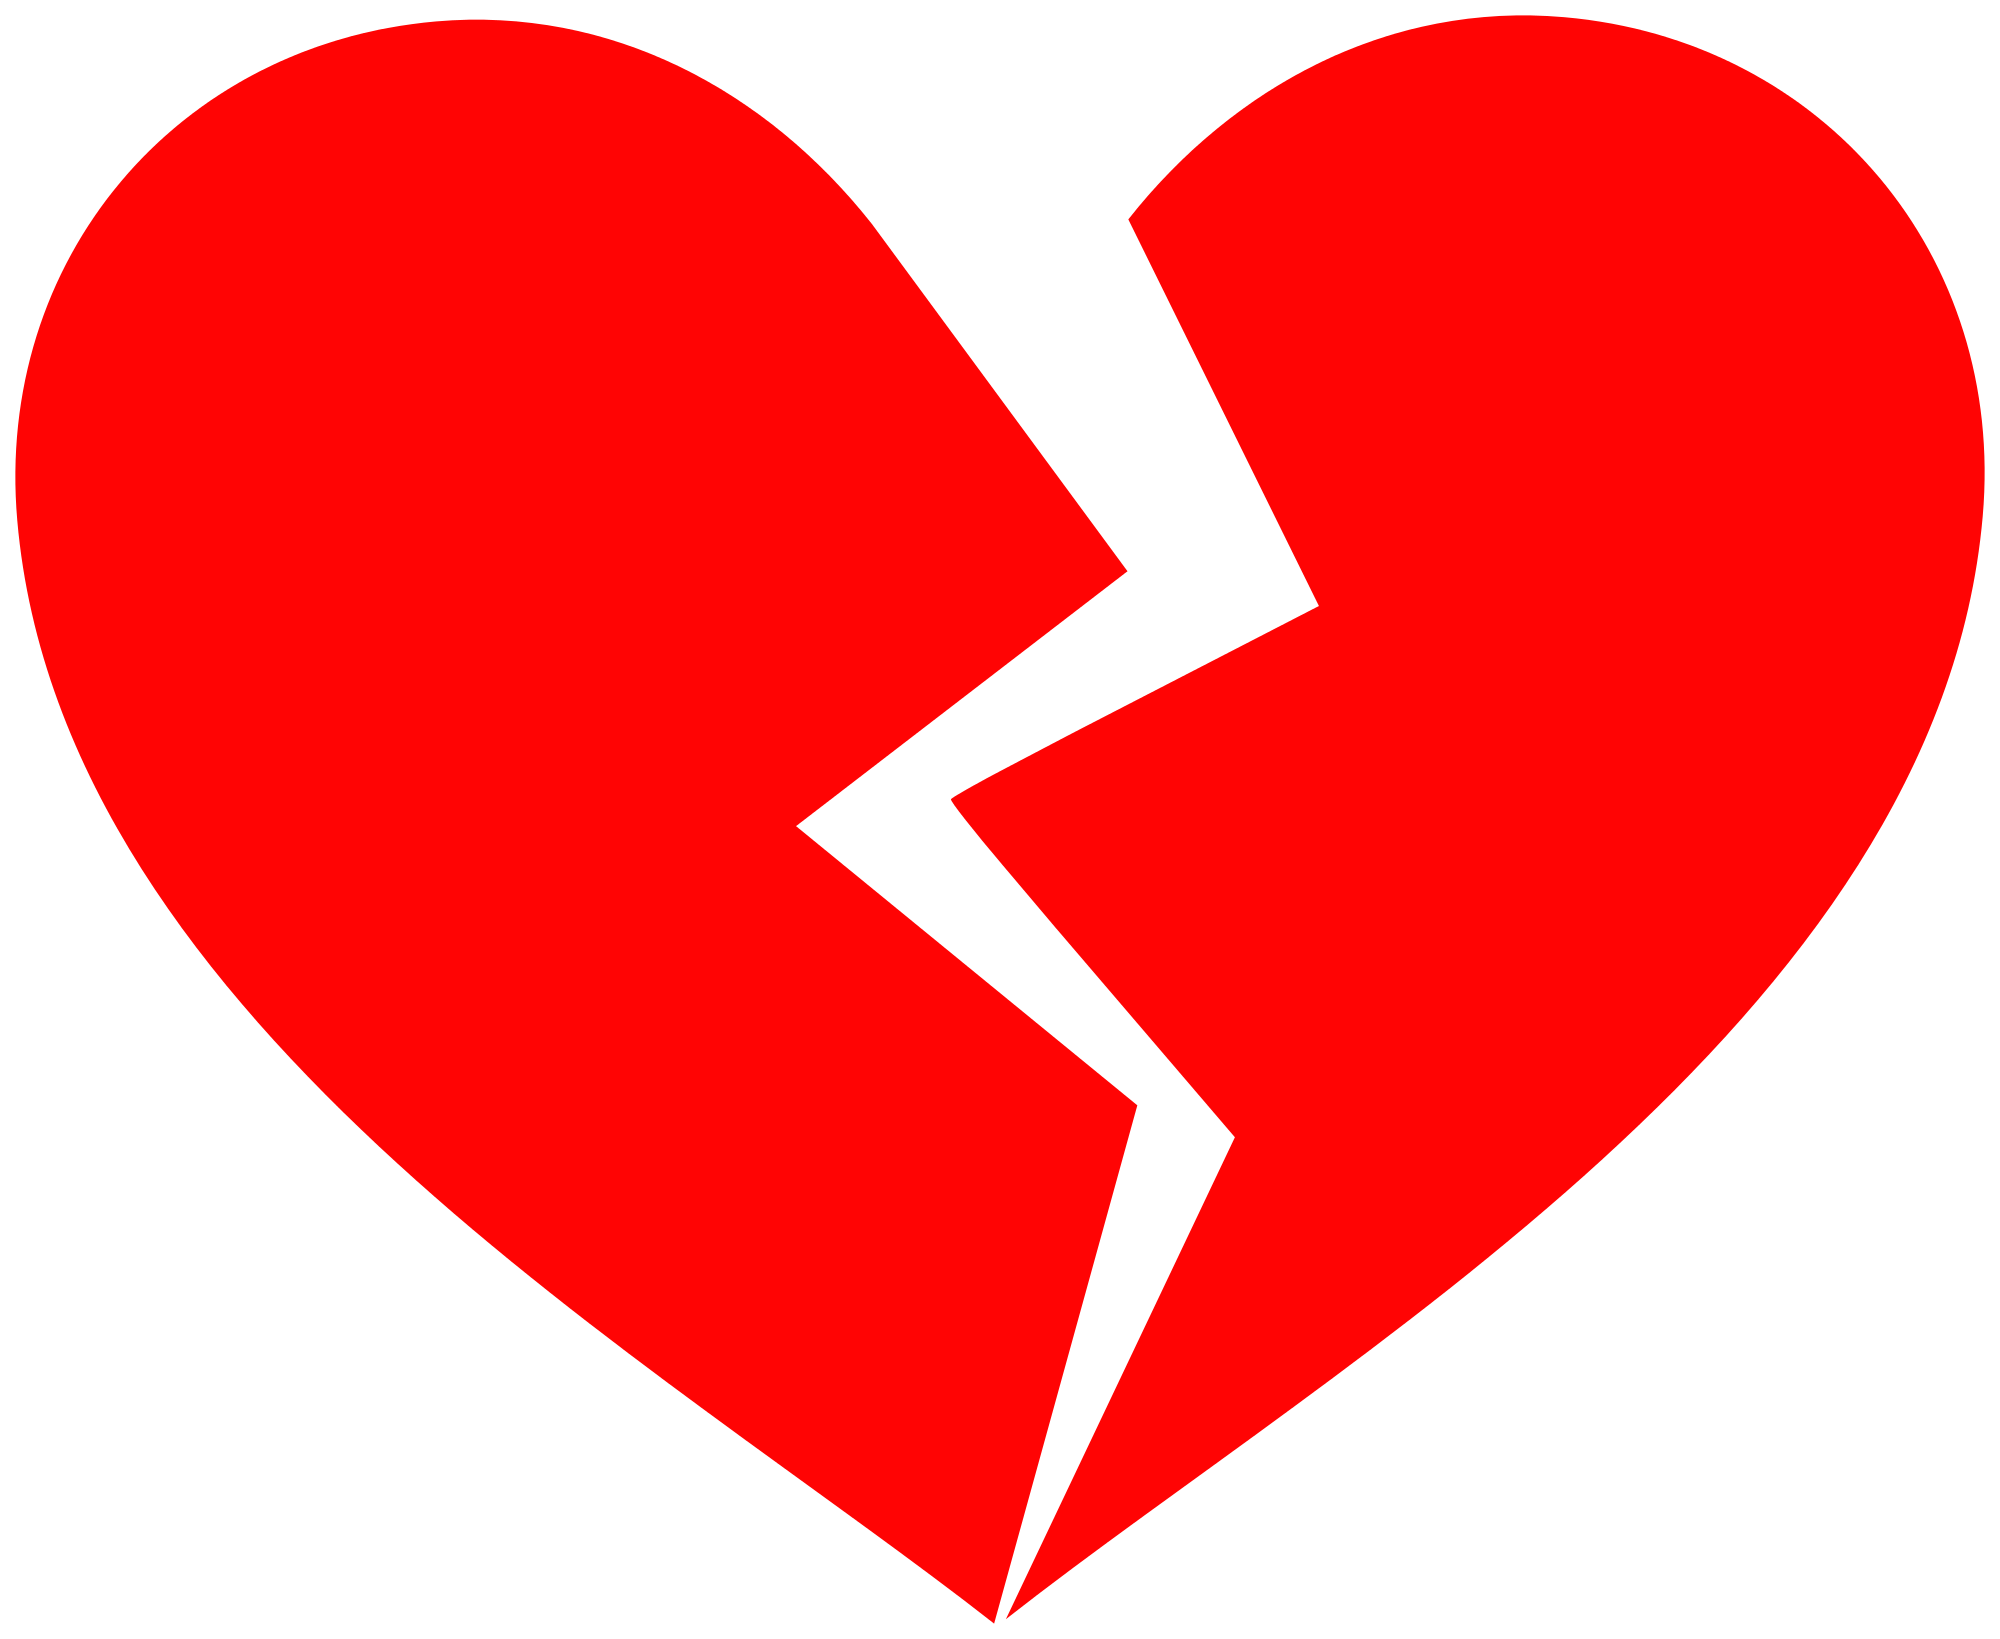 Thankful heart clipart graphic royalty free library 55 Best Broken Heart Pictures And Images graphic royalty free library